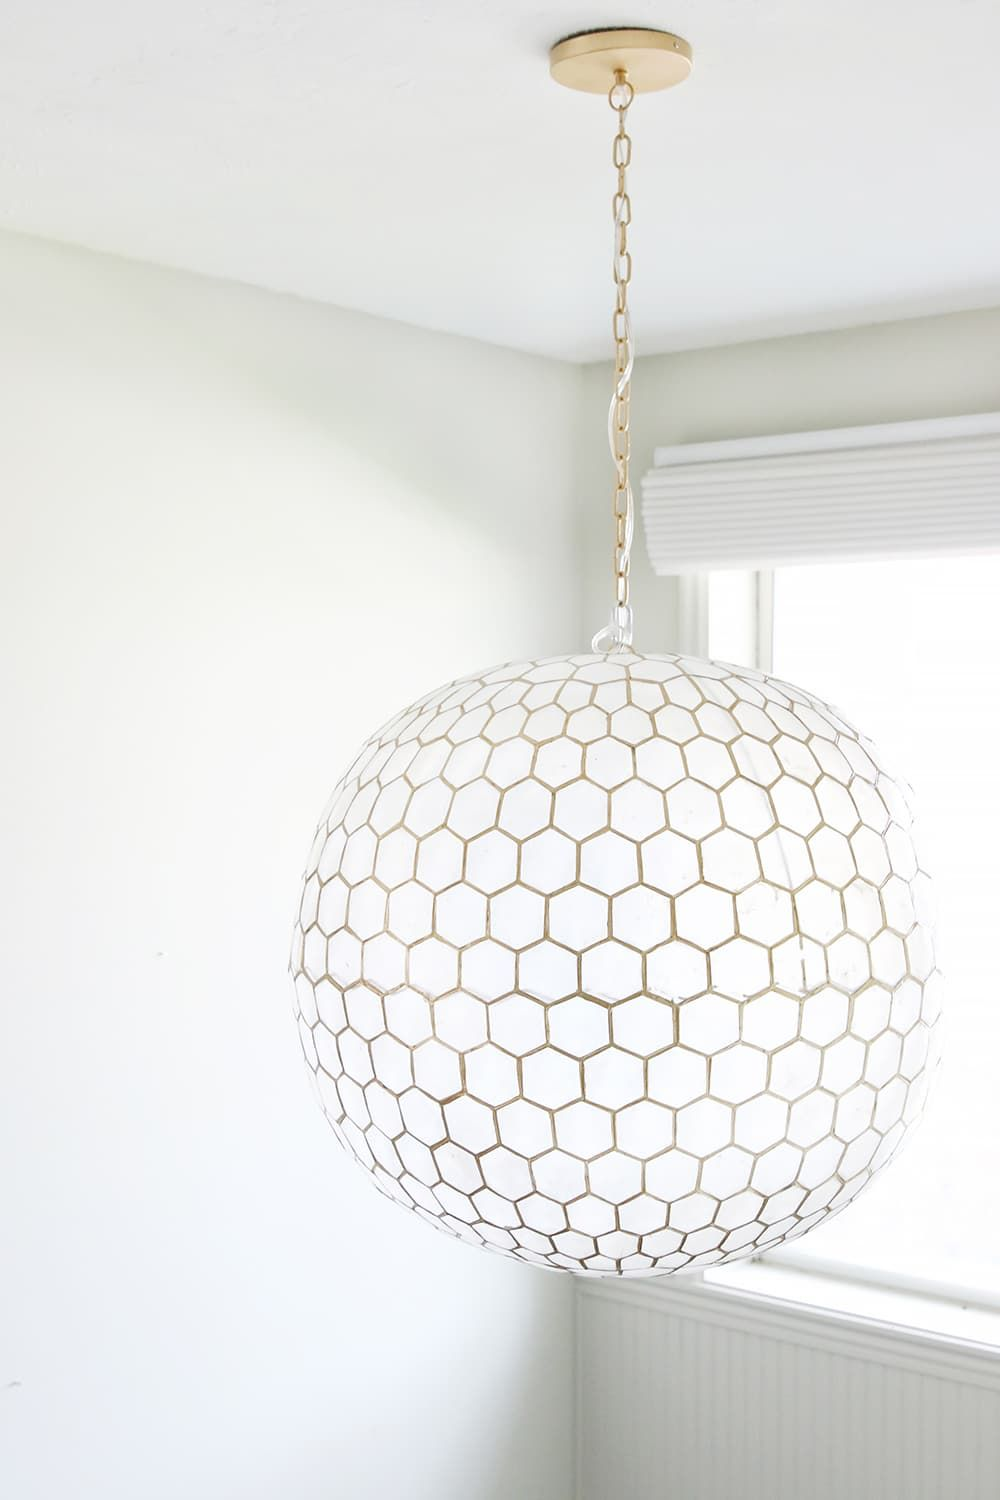 A Honeycomb Capiz Globe Light For The Stairwell Stairwell Light